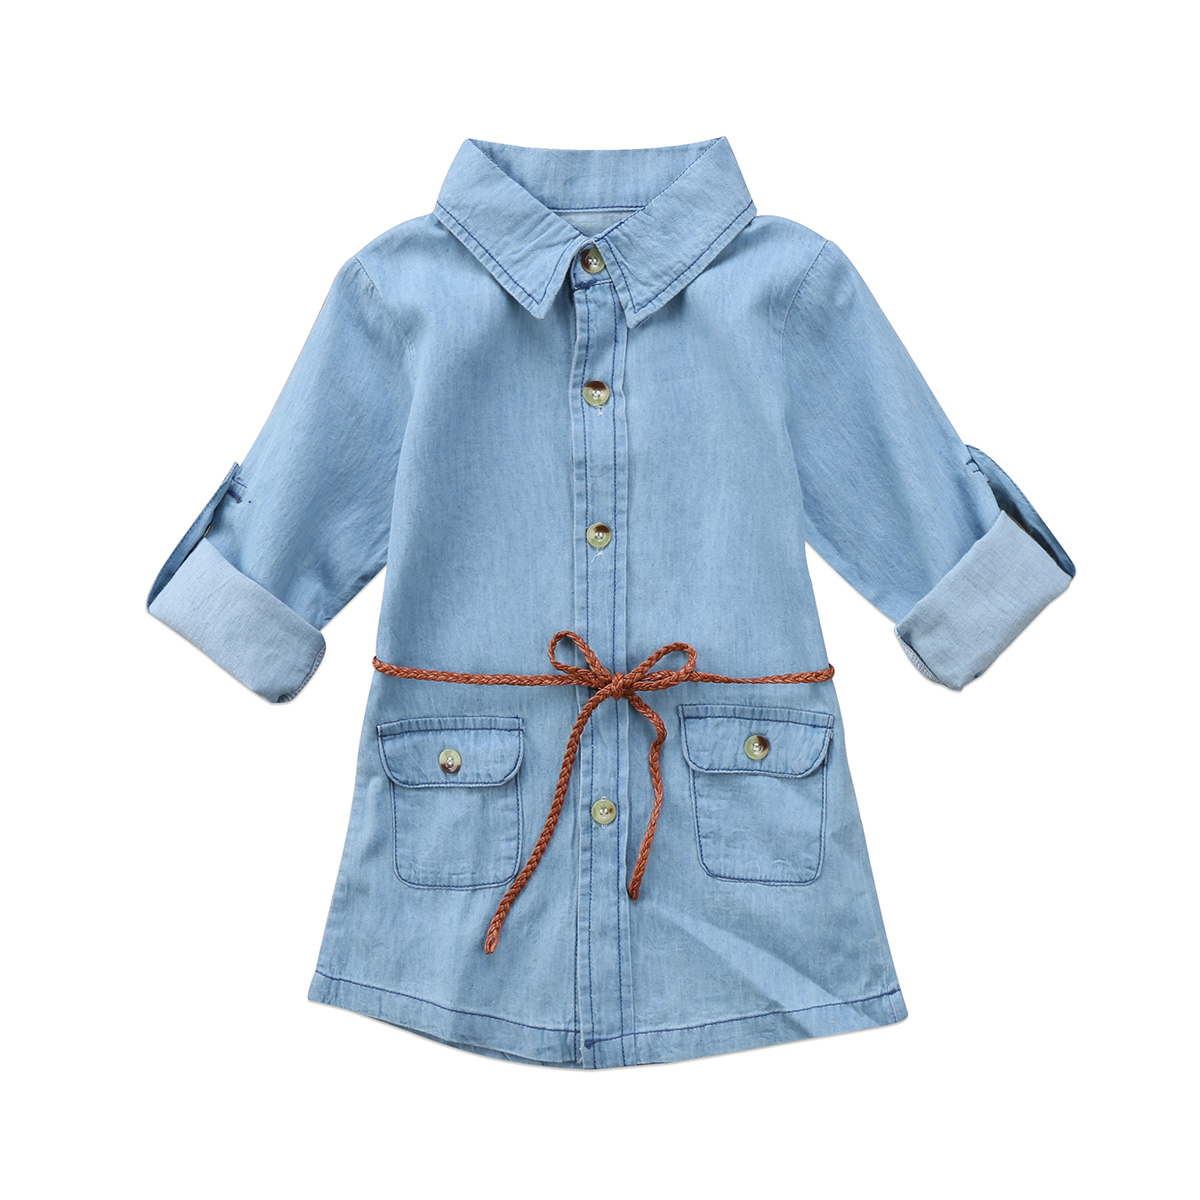 Baby Kids Girl Denim Long Shirt Fashion Denim Color Drawstring waist Shirt china cold firework machine indoor wedding fountain dmx display spark system fireworks machine